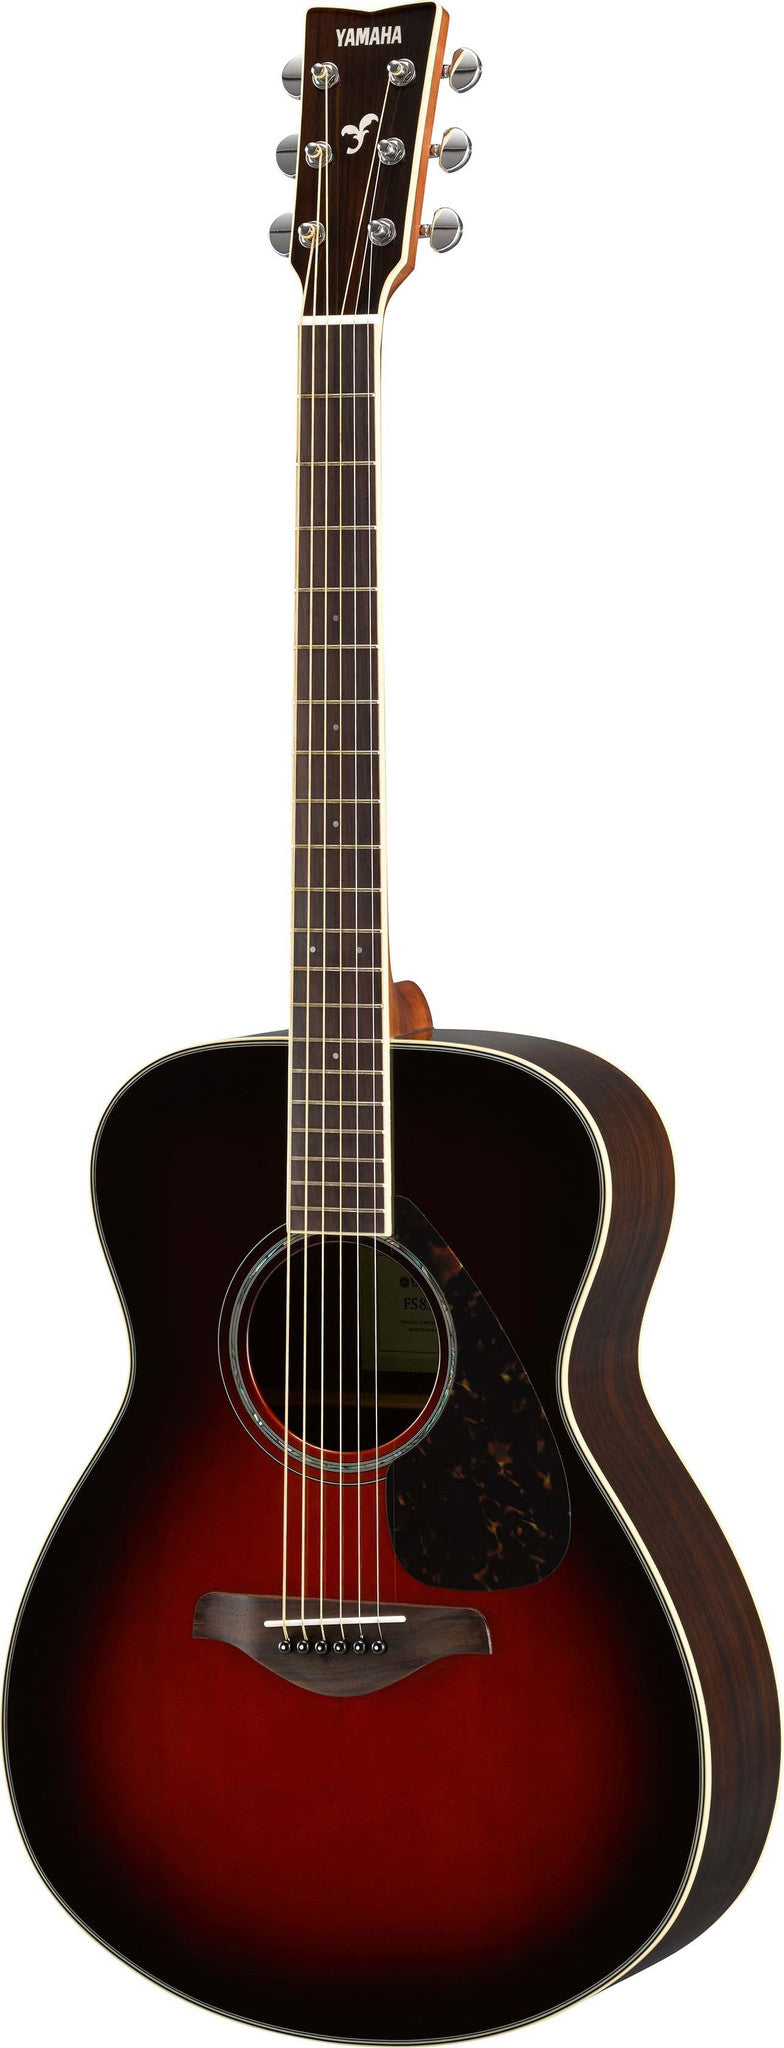 Yamaha FS830TBS Small Body Acoustic Guitar